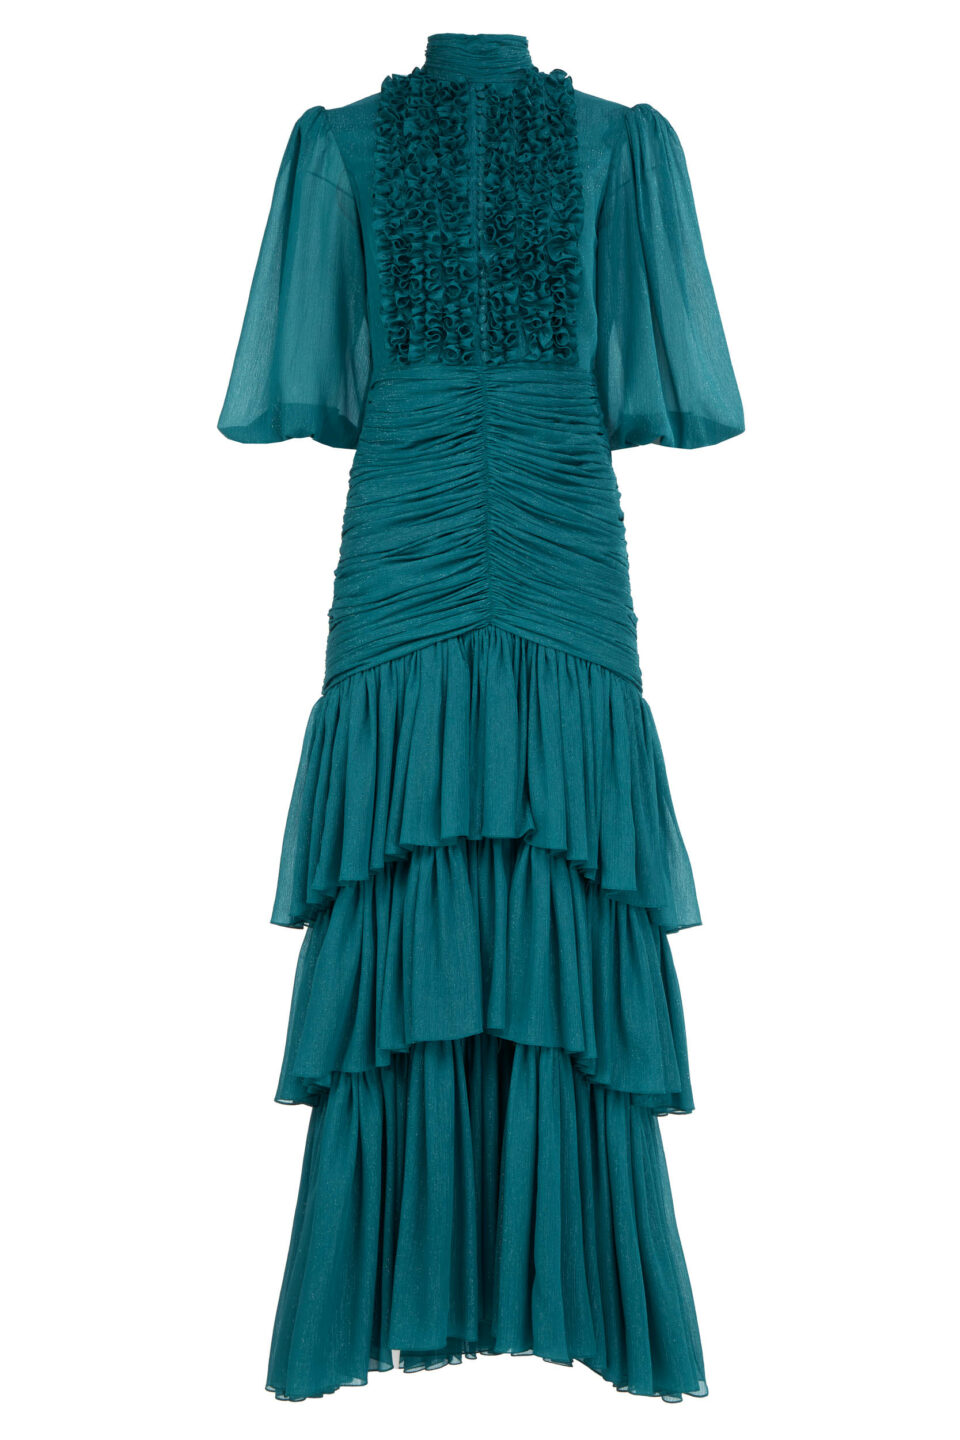 Natalie FW2133 Green Lurex Crinkle Chiffon Tiered Dress with Ruffled Keyhole Bodice & Ruched Details